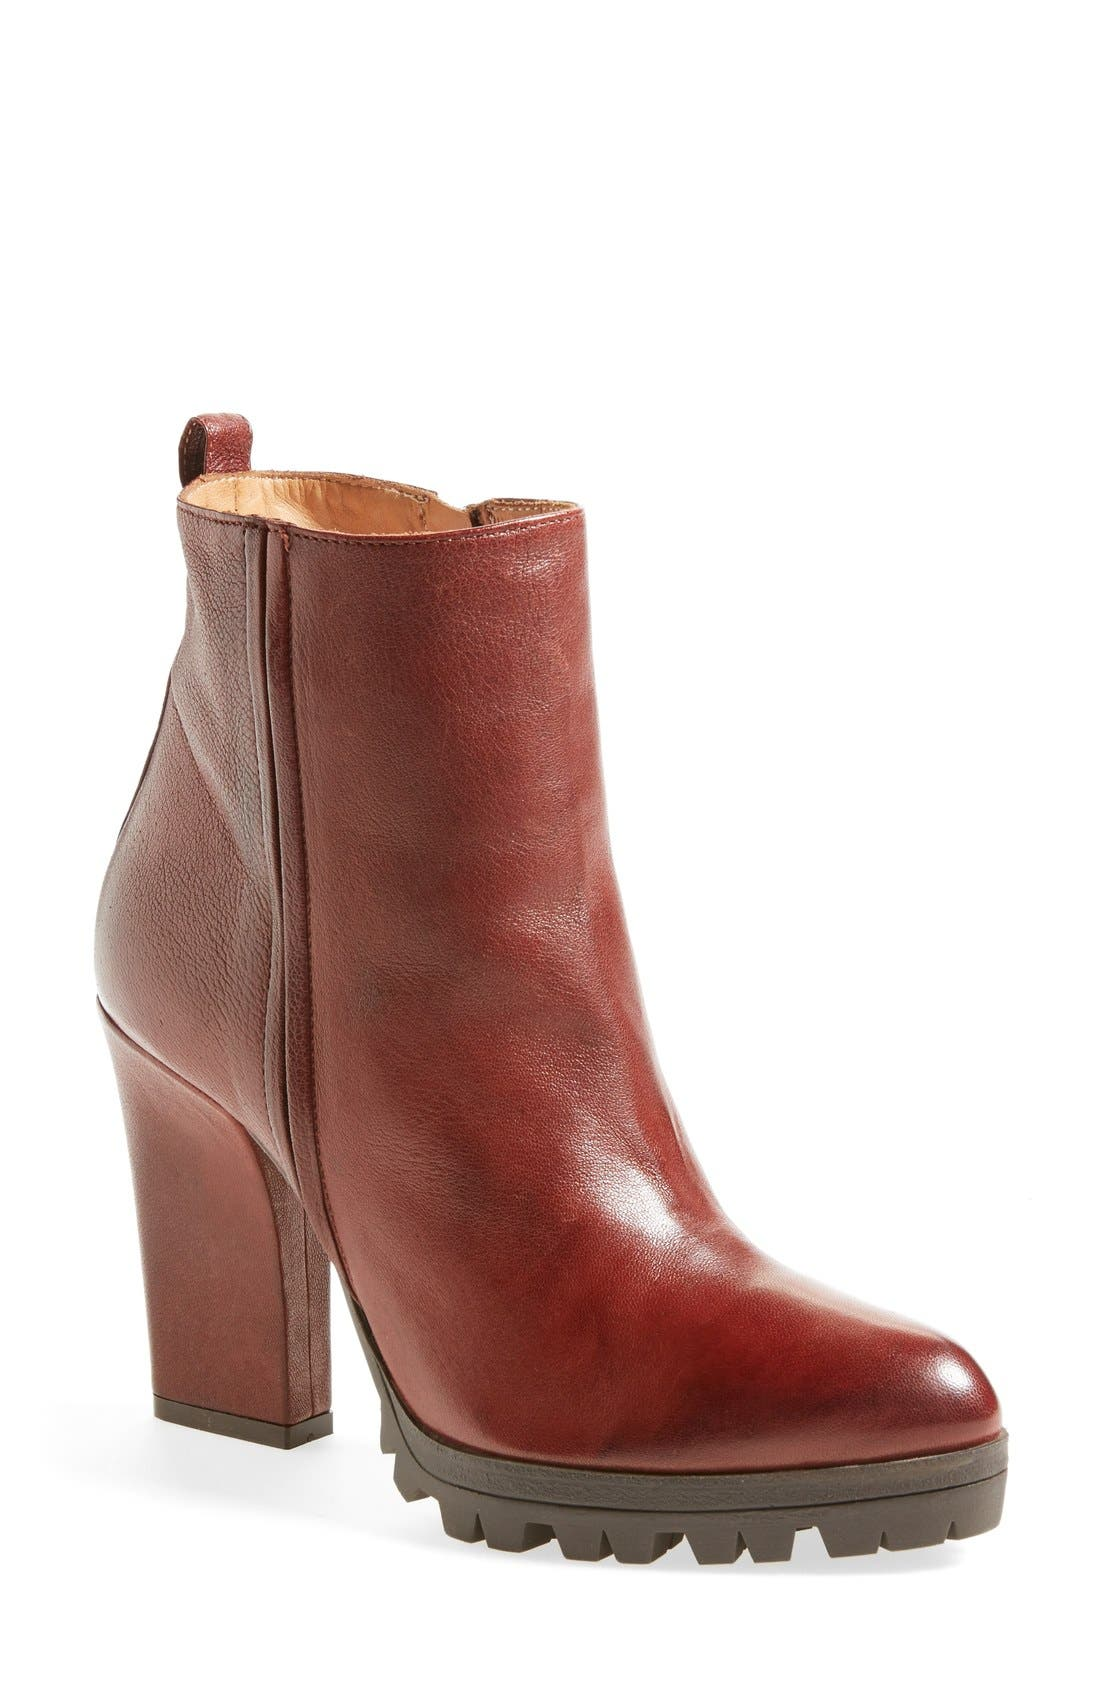 Main Image - Alberto Fermani 'Vervelli' Lugged Sole Bootie (Women)